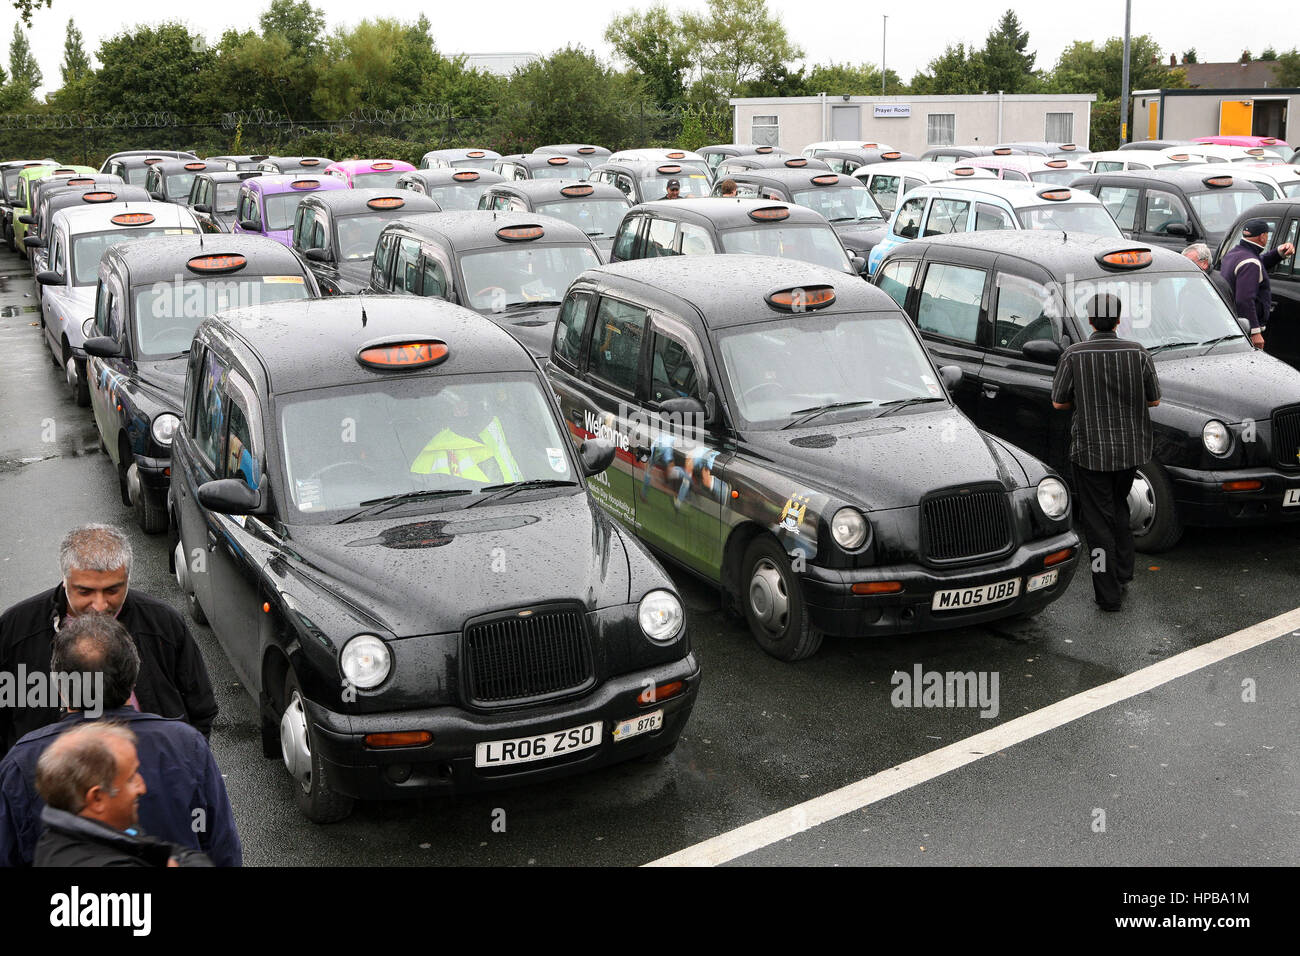 Taxis remained parked up near Manchester Airport as their drivers go on strike. - Stock Image